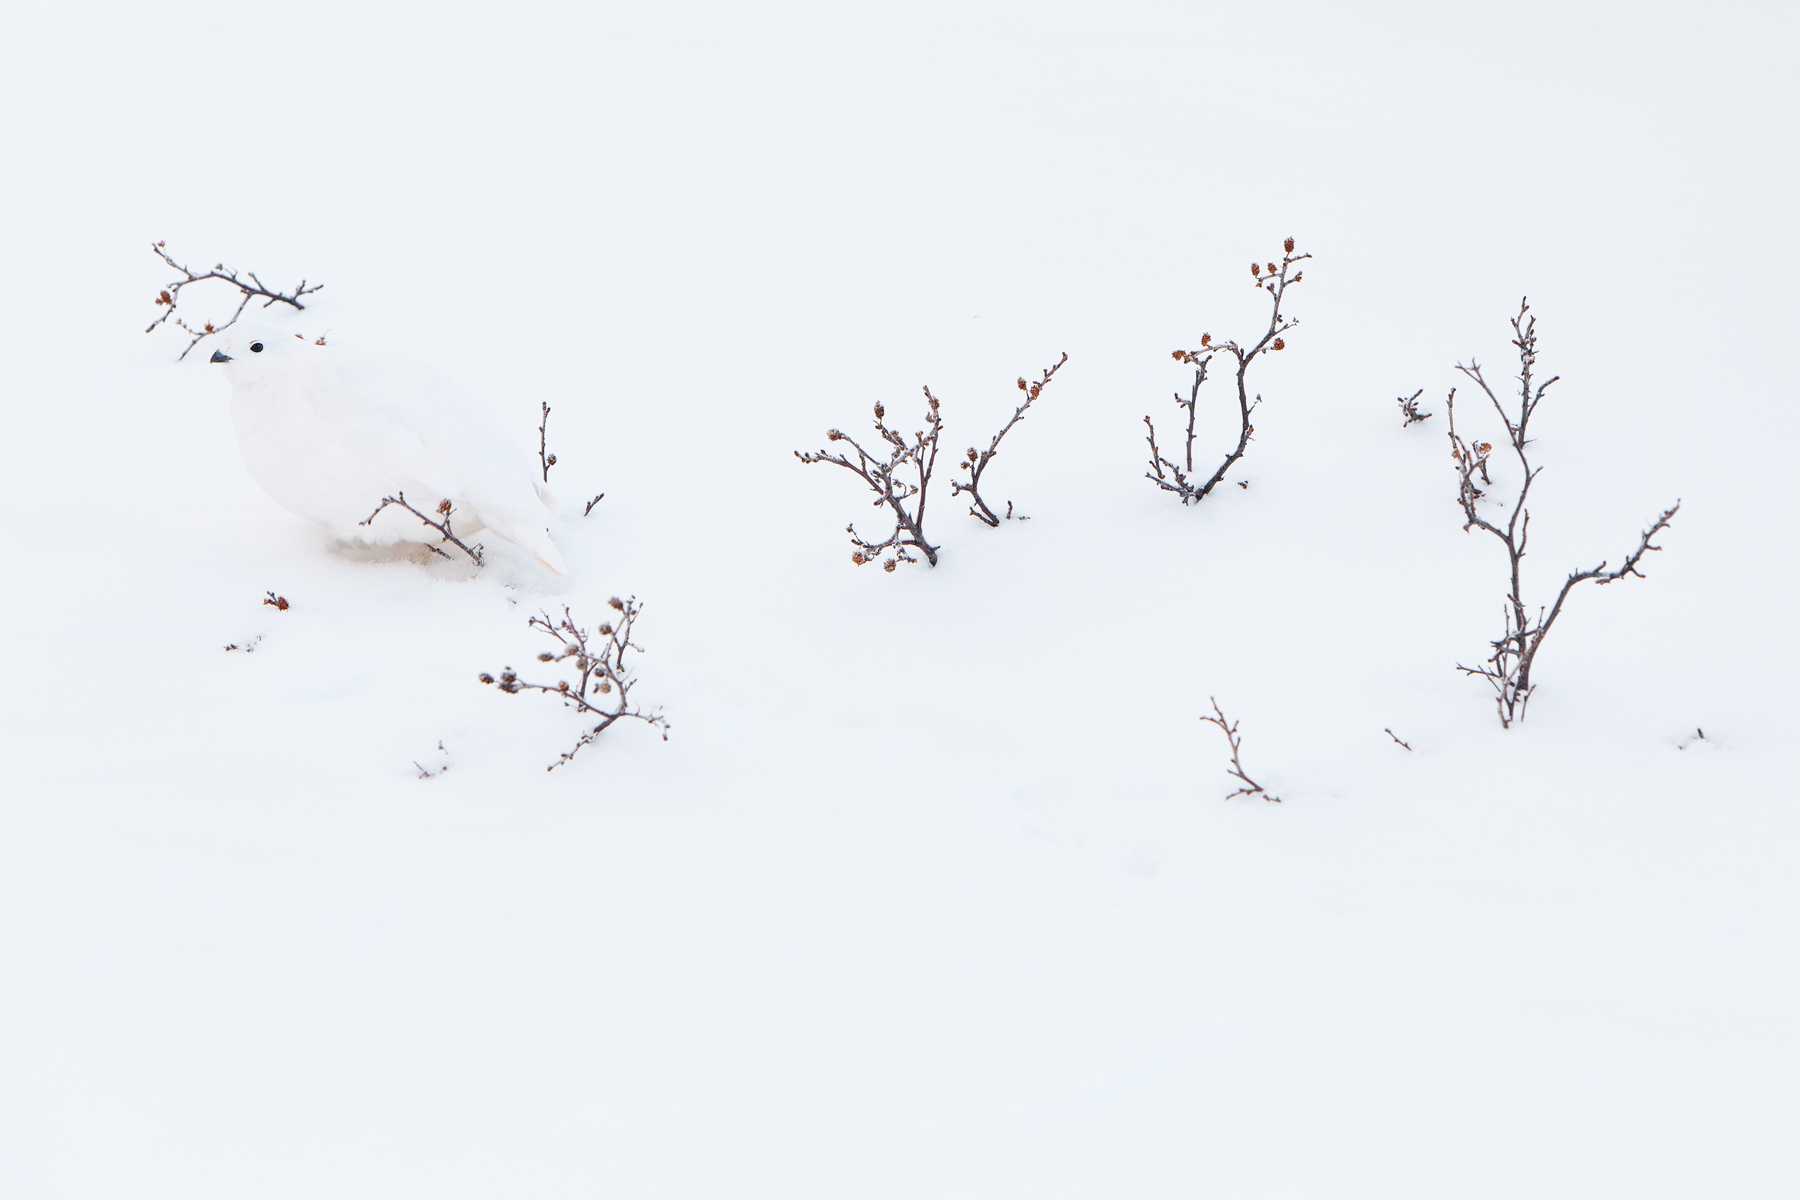 A White-tailed Ptarmigan blends into it's surroundings in Jasper National Park, Canada.  Image ©Connor Stefanison